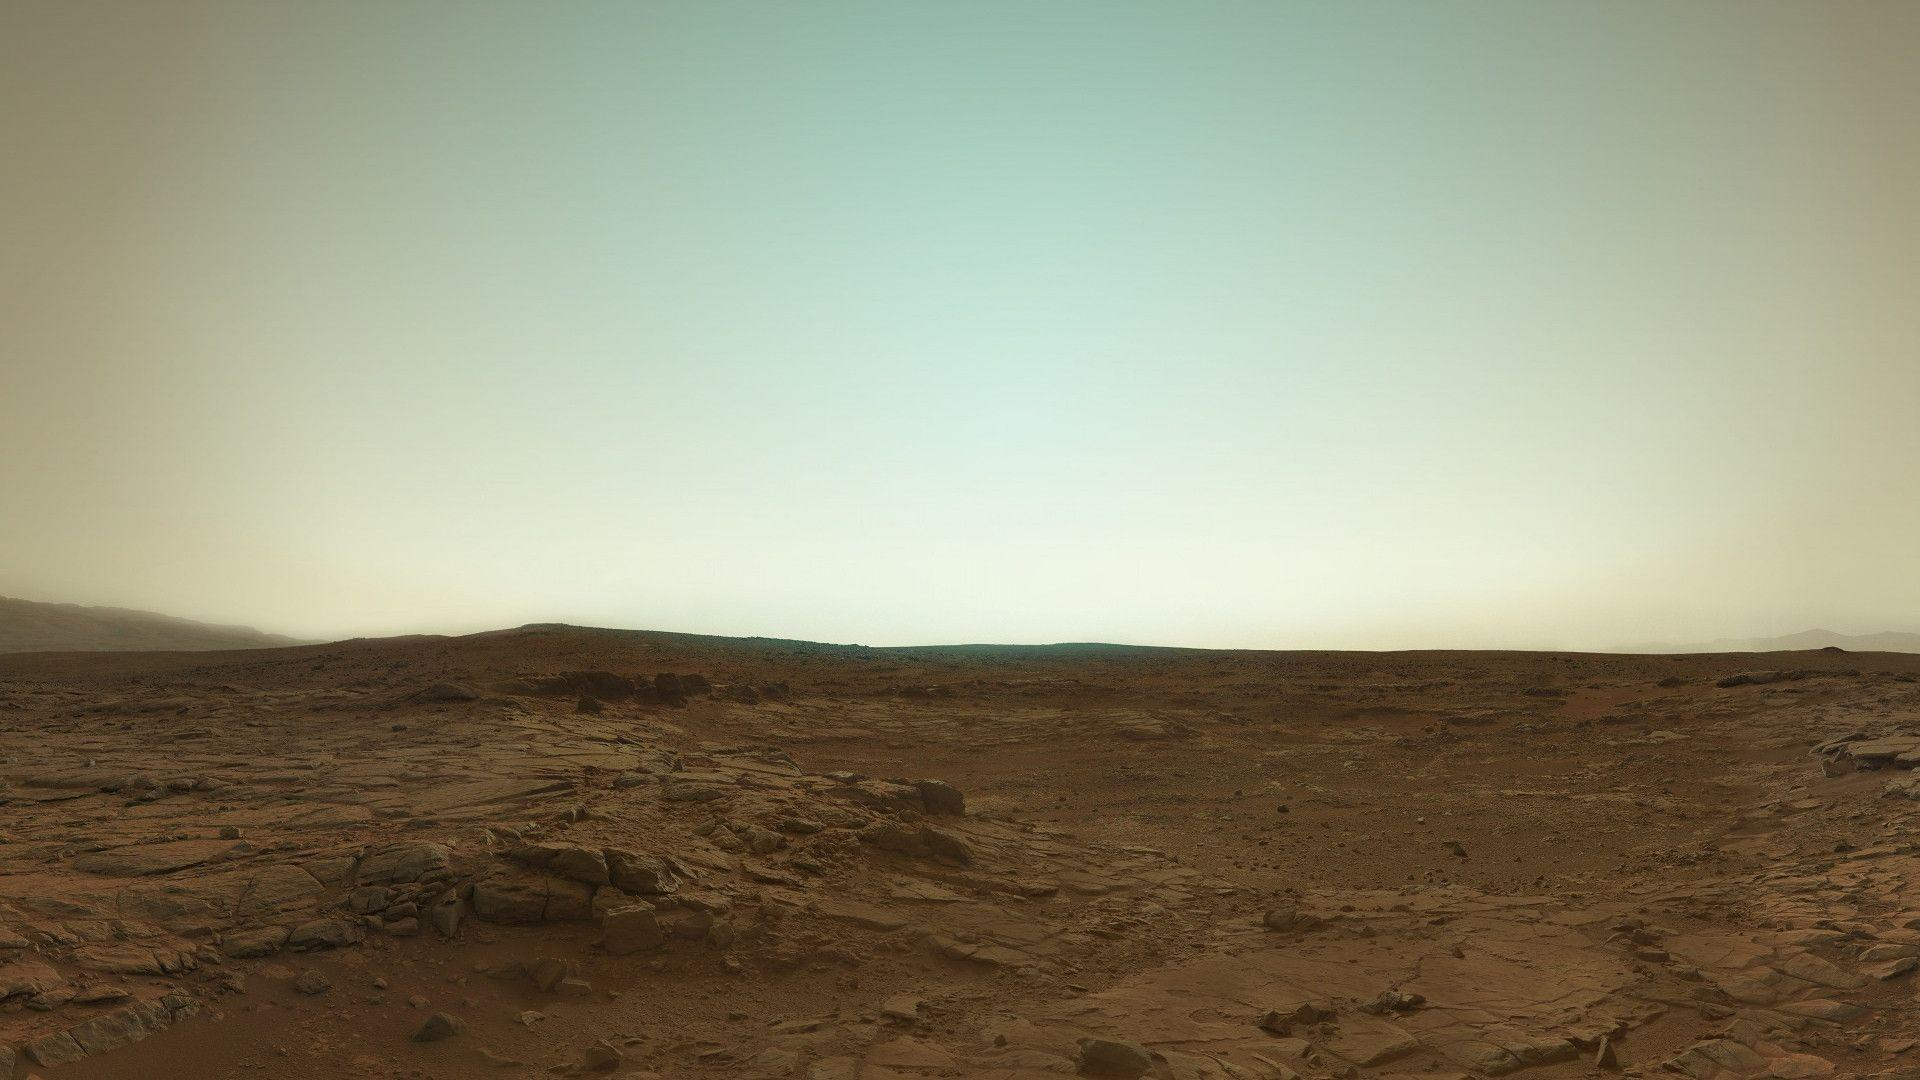 Mars in true color. Latest picture from Curiosity.